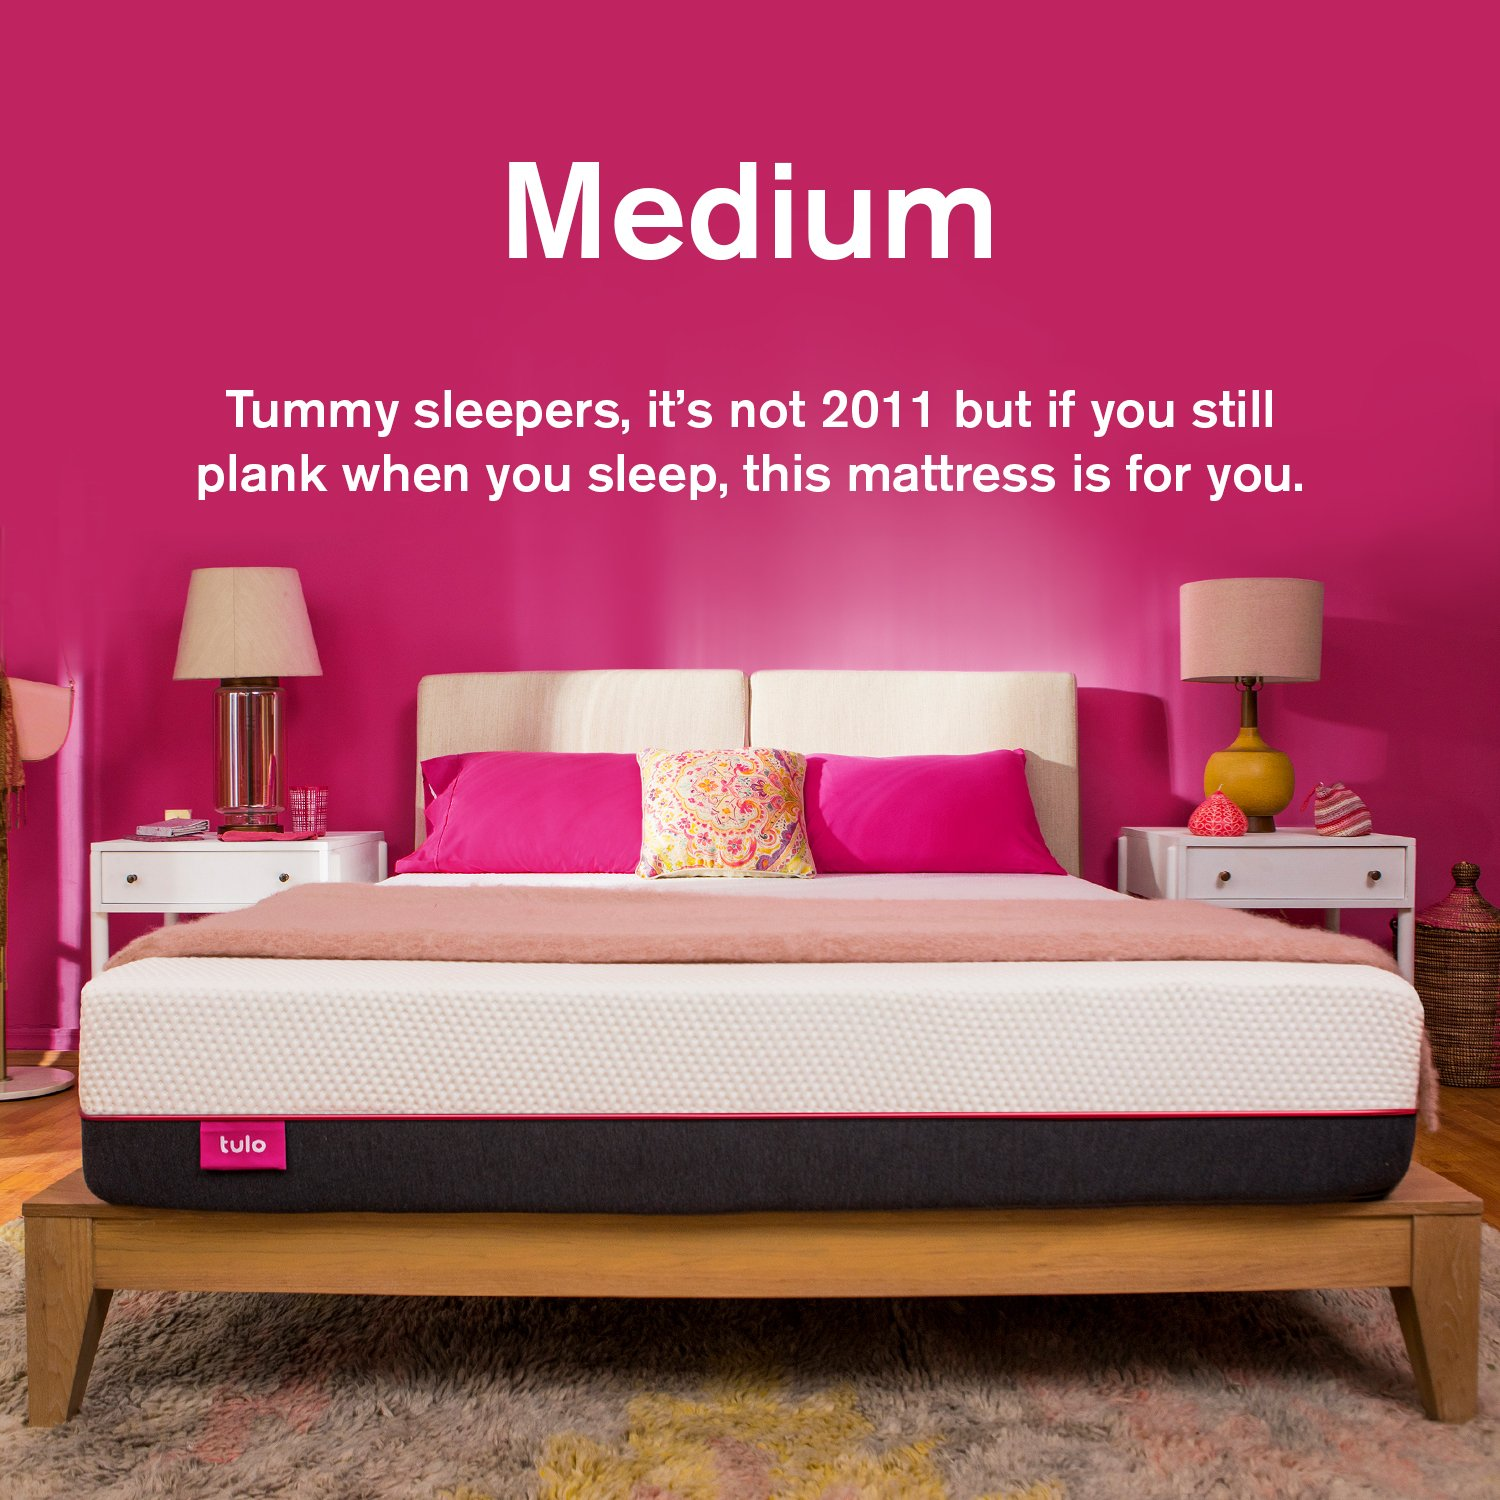 Amazon.com: Mattress by tulo, Pick your Comfort Level, Medium Queen Size 10 Bed in a Box, Great for Sleep and Balance Between Soft and Firm: Kitchen & ...